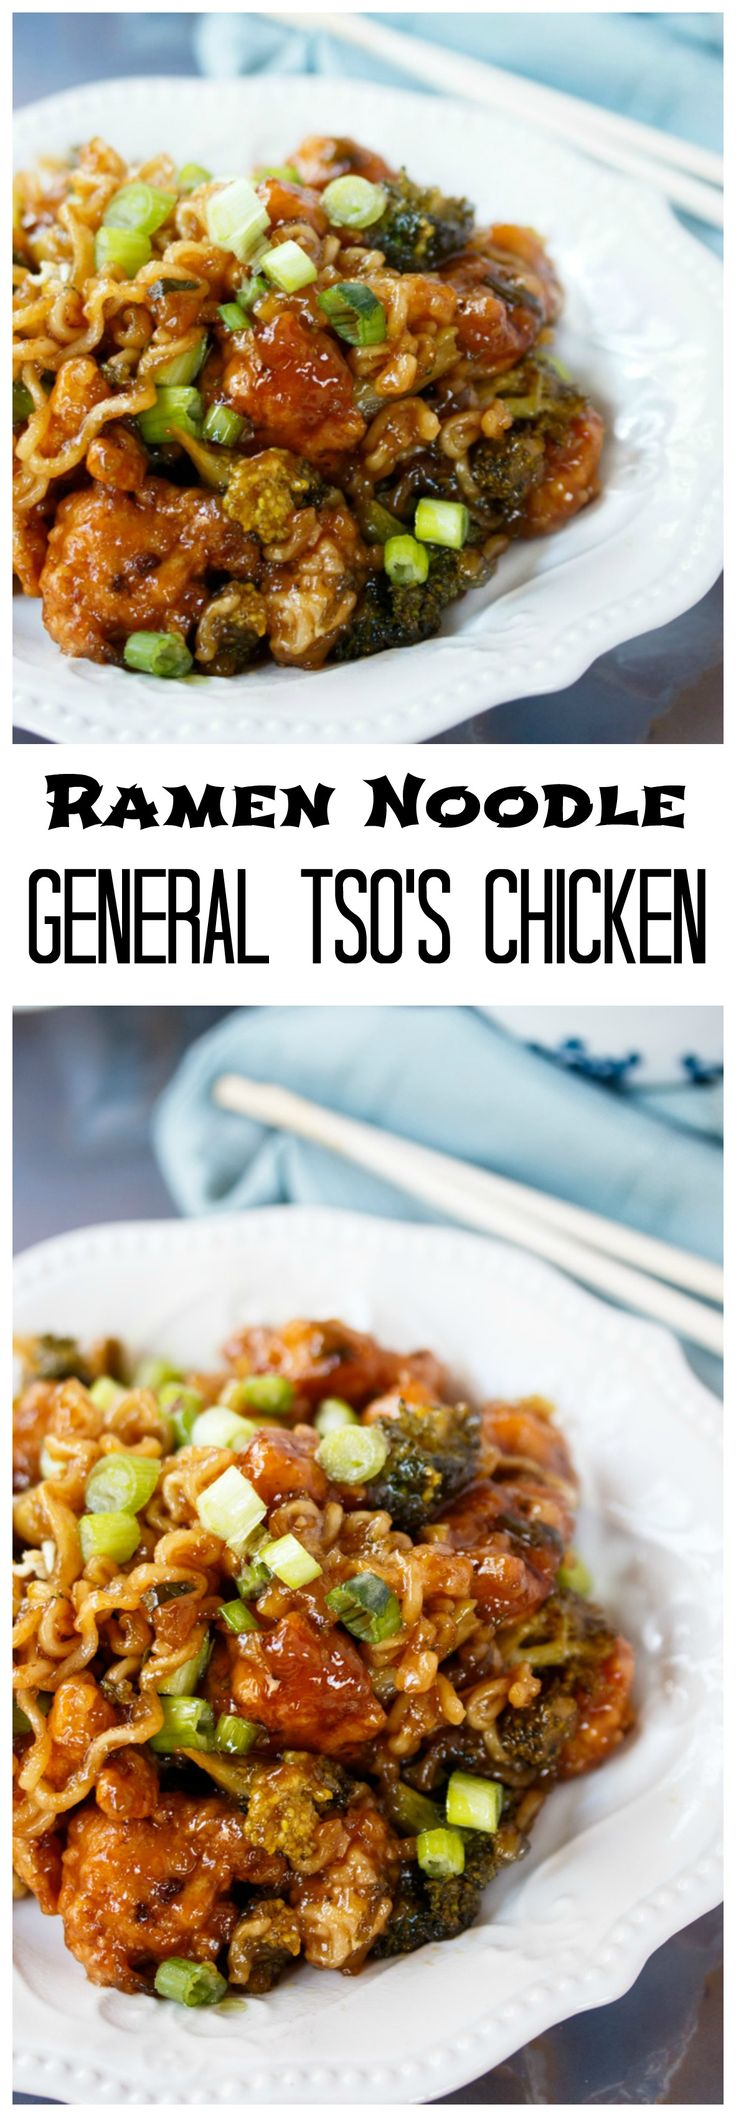 Ramen Noodles General Tso's Chicken: Crispy chicken smothered in a thick and savory General Tso's Chicken sauce and tossed with broccoli and Ramen Noodles!